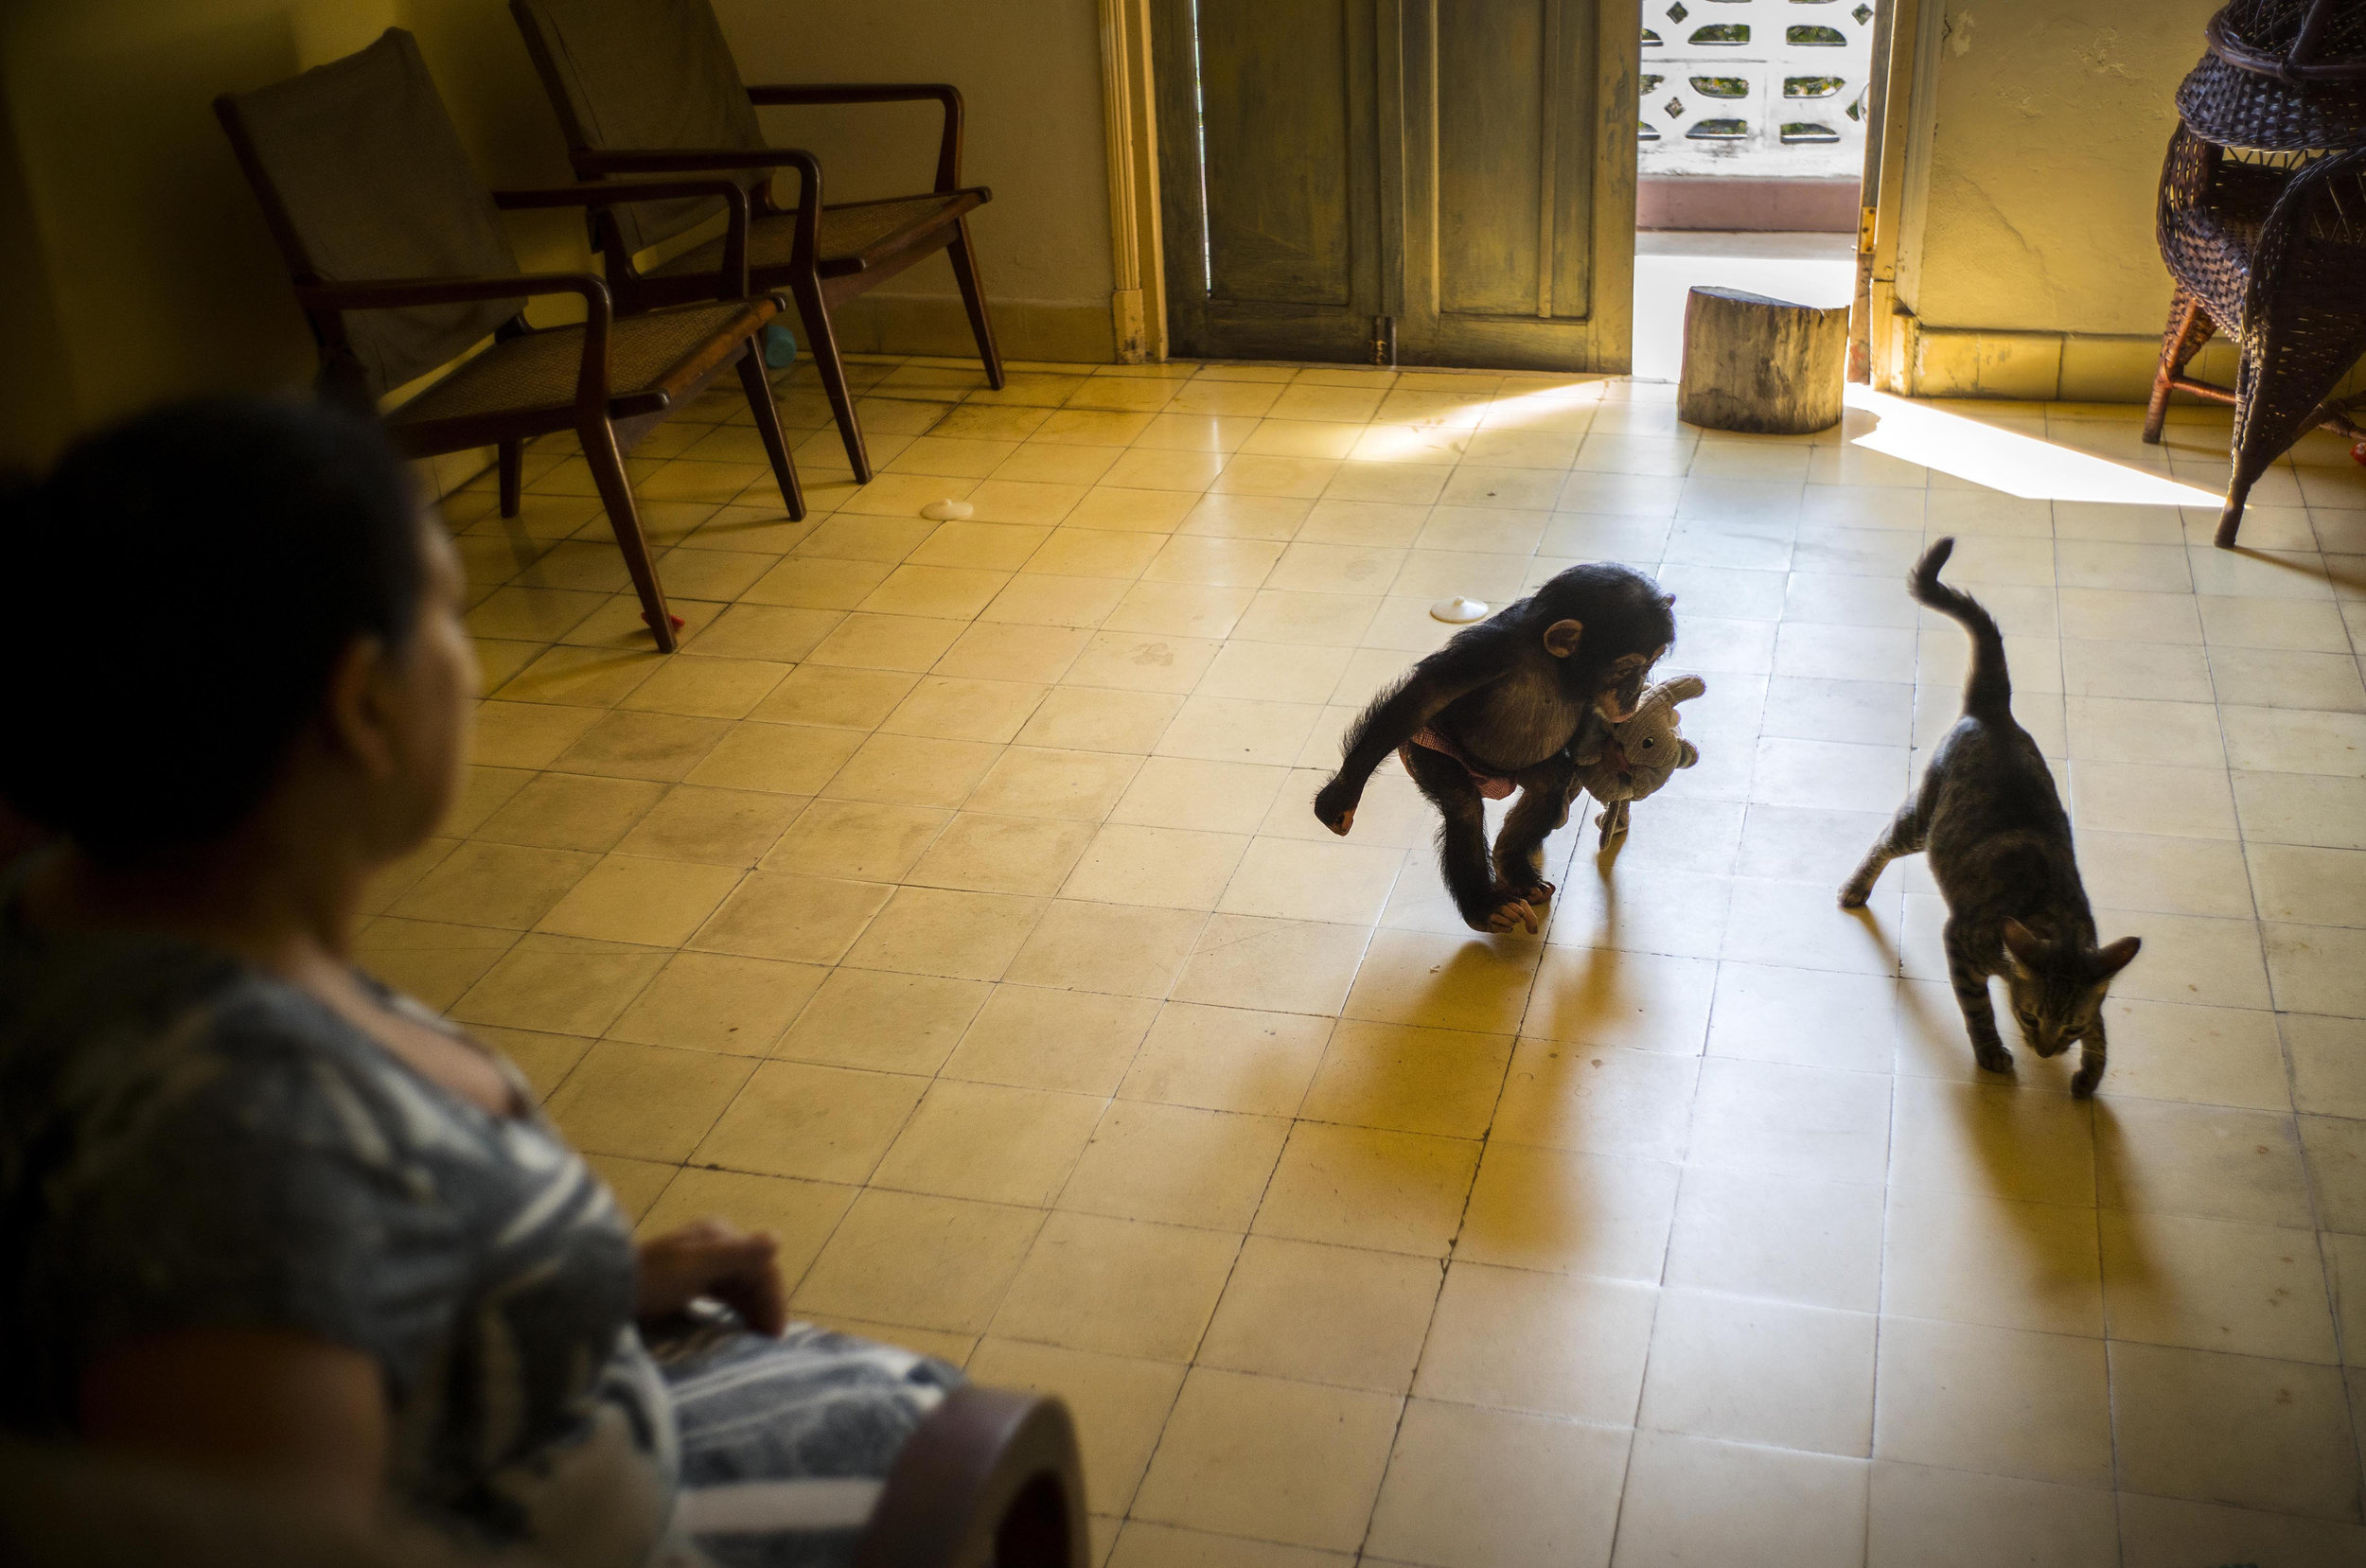 In this April 4, 2017 photo, zoologist Marta Llanes looks after baby chimpanzee Anuma II as she plays with the house cat Ty, at her apartment in Havana, Cuba. The floor is covered with toys, all sharp objects have been hidden away and the electric sockets covered to prevent a dangerous accidental shock. (AP Photo/Ramon Espinosa)